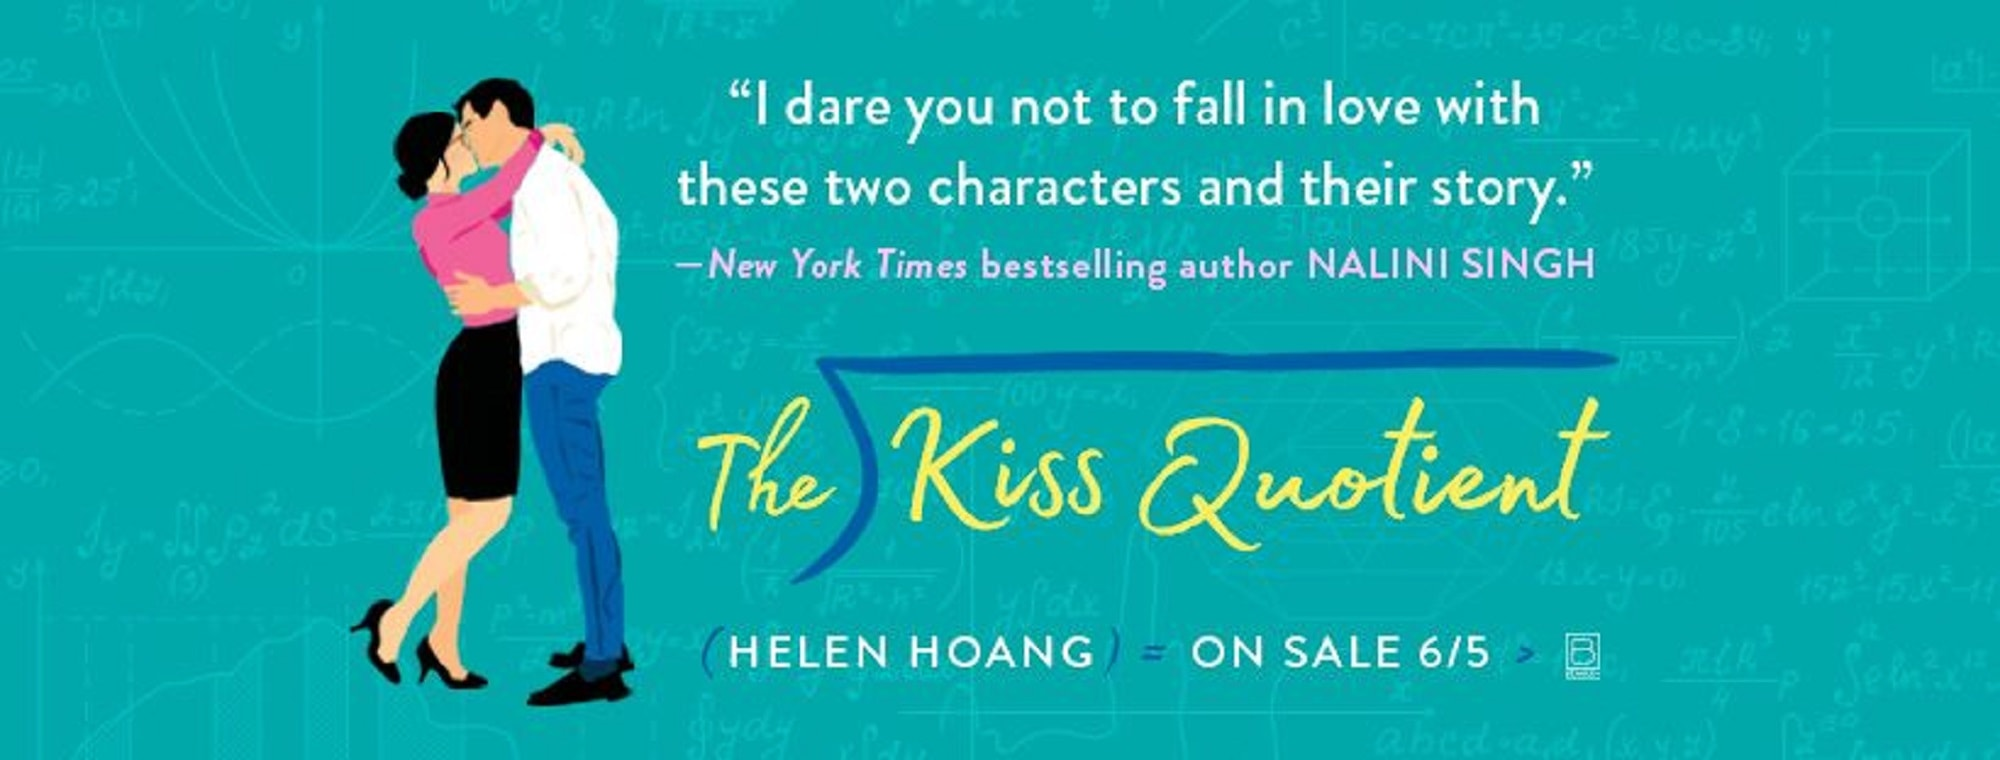 Book Review: 'The Kiss Quotient' by Helen Hoang - Fuzzable